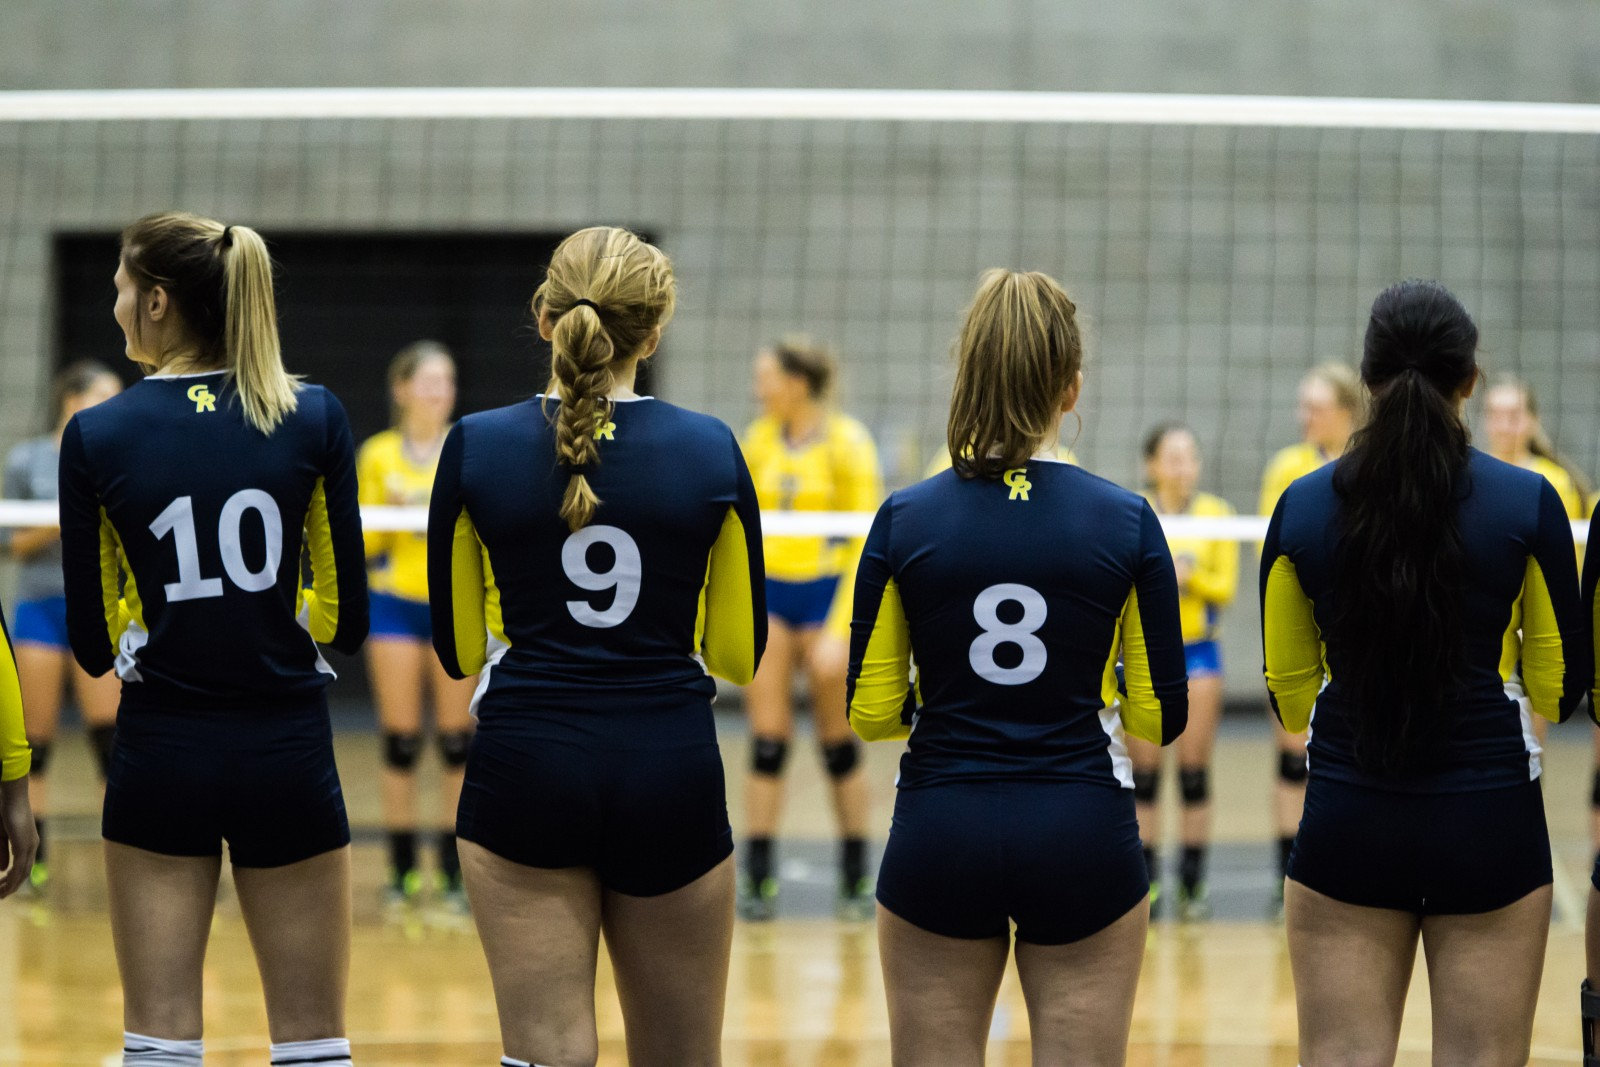 Kylie Frank from the Muskegon game, earlier this year, with teammates on her right and left, waiting to start the game.